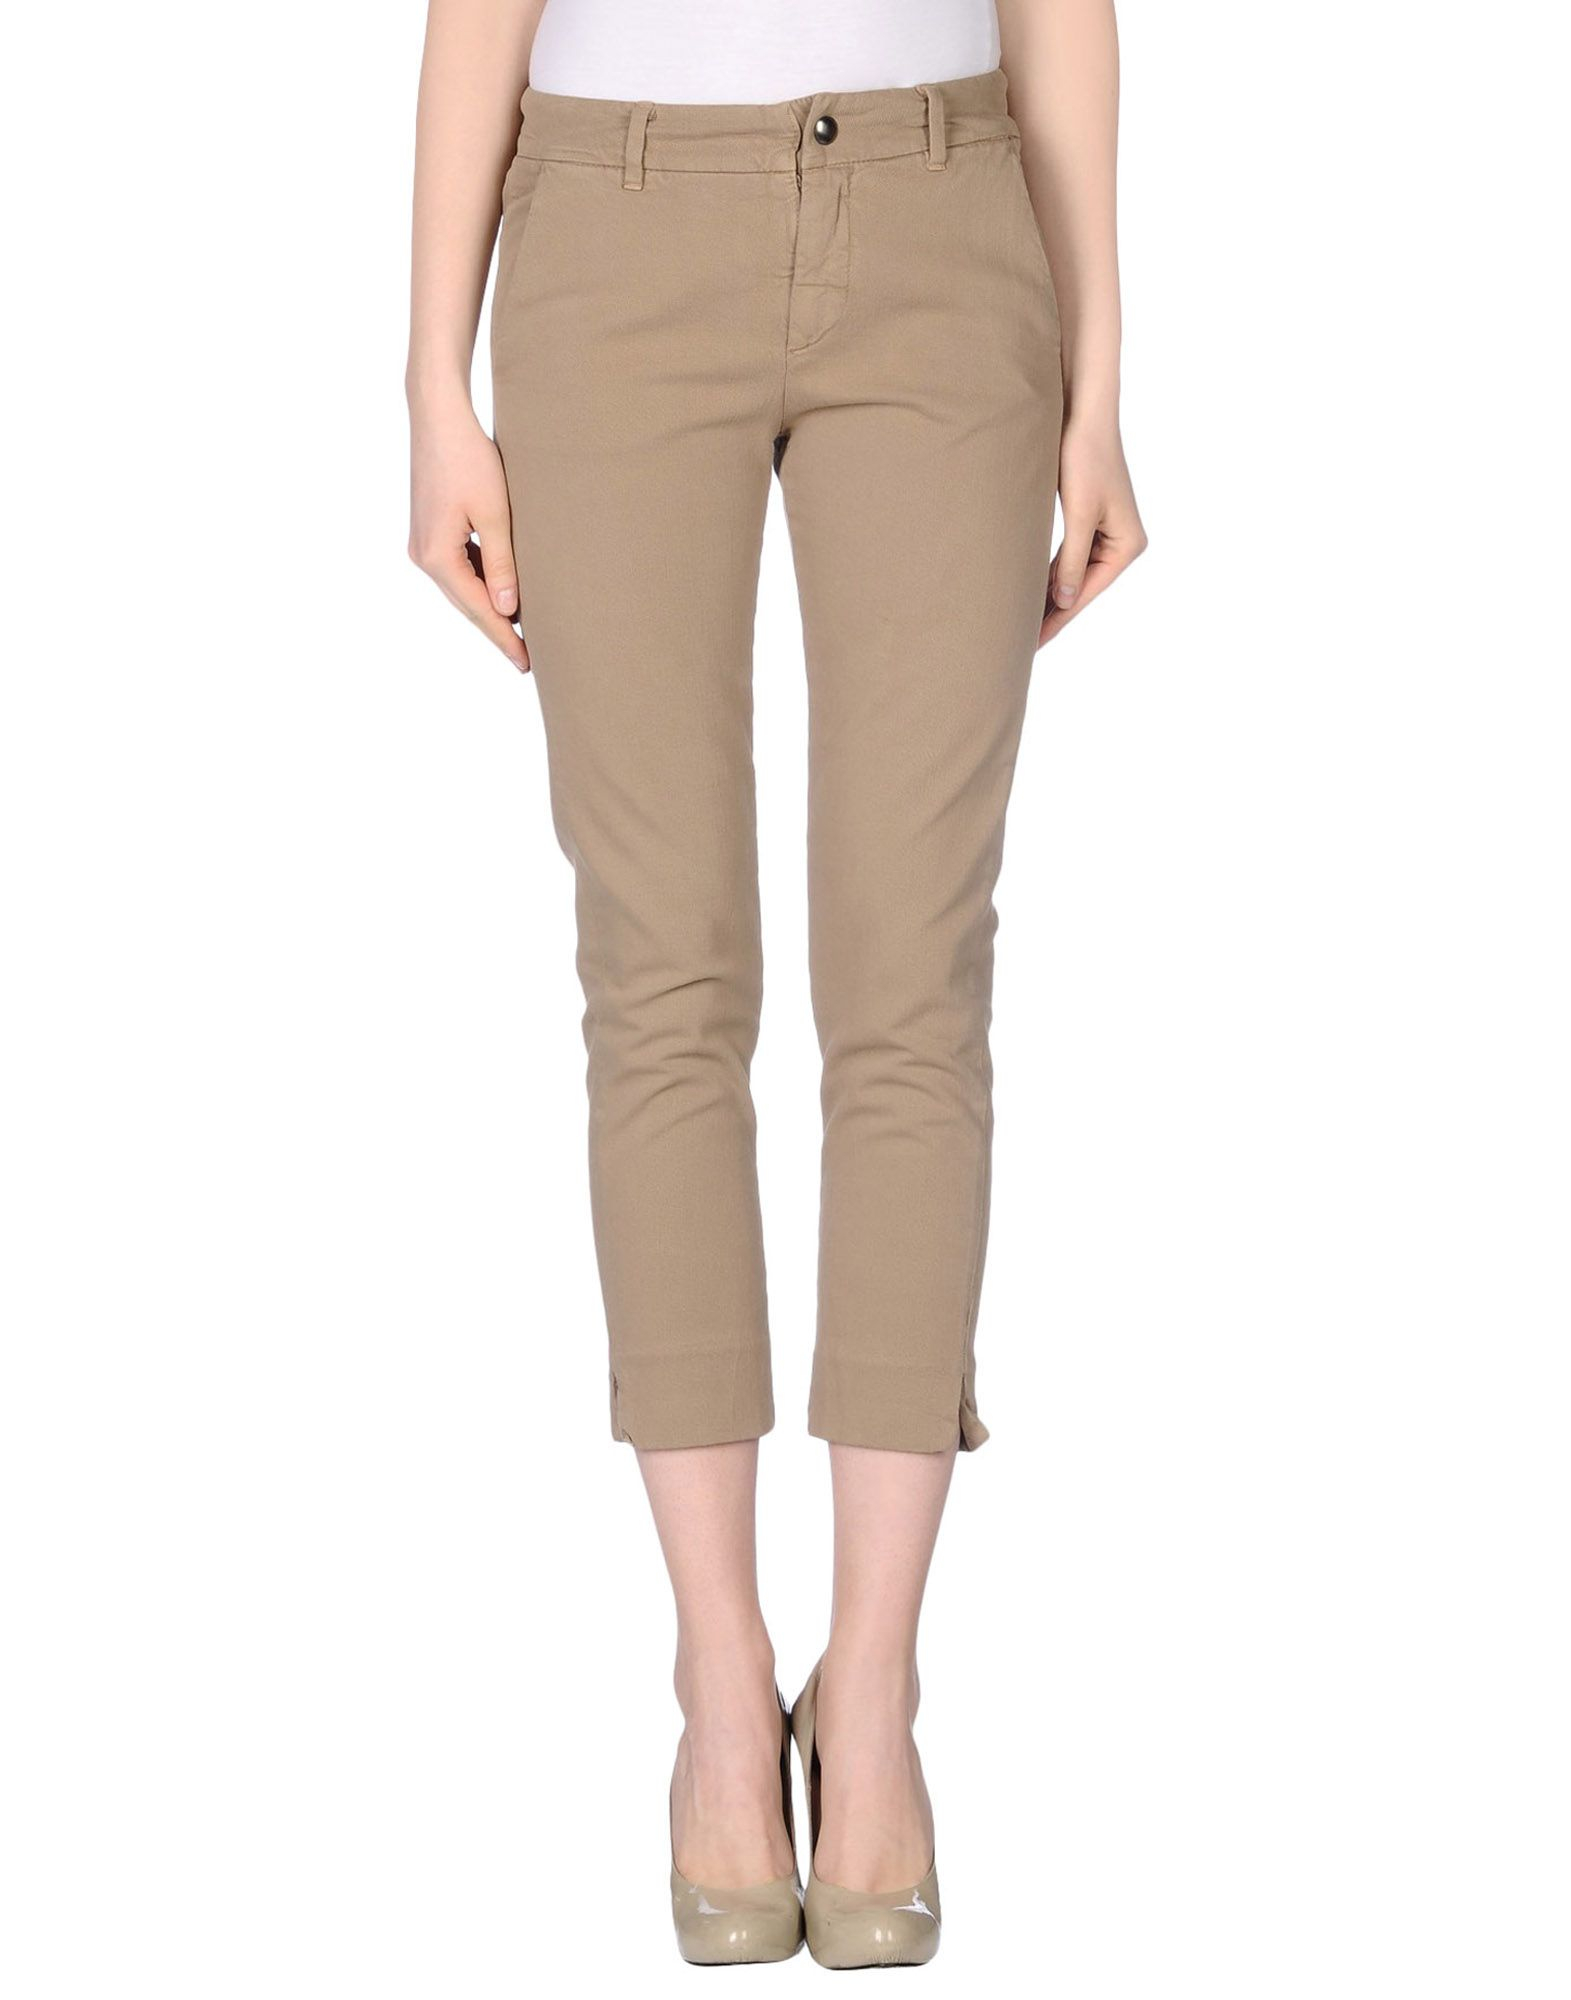 Shop for kelly green pants womens online at Target. Free shipping on purchases over $35 and save 5% every day with your Target REDcard.